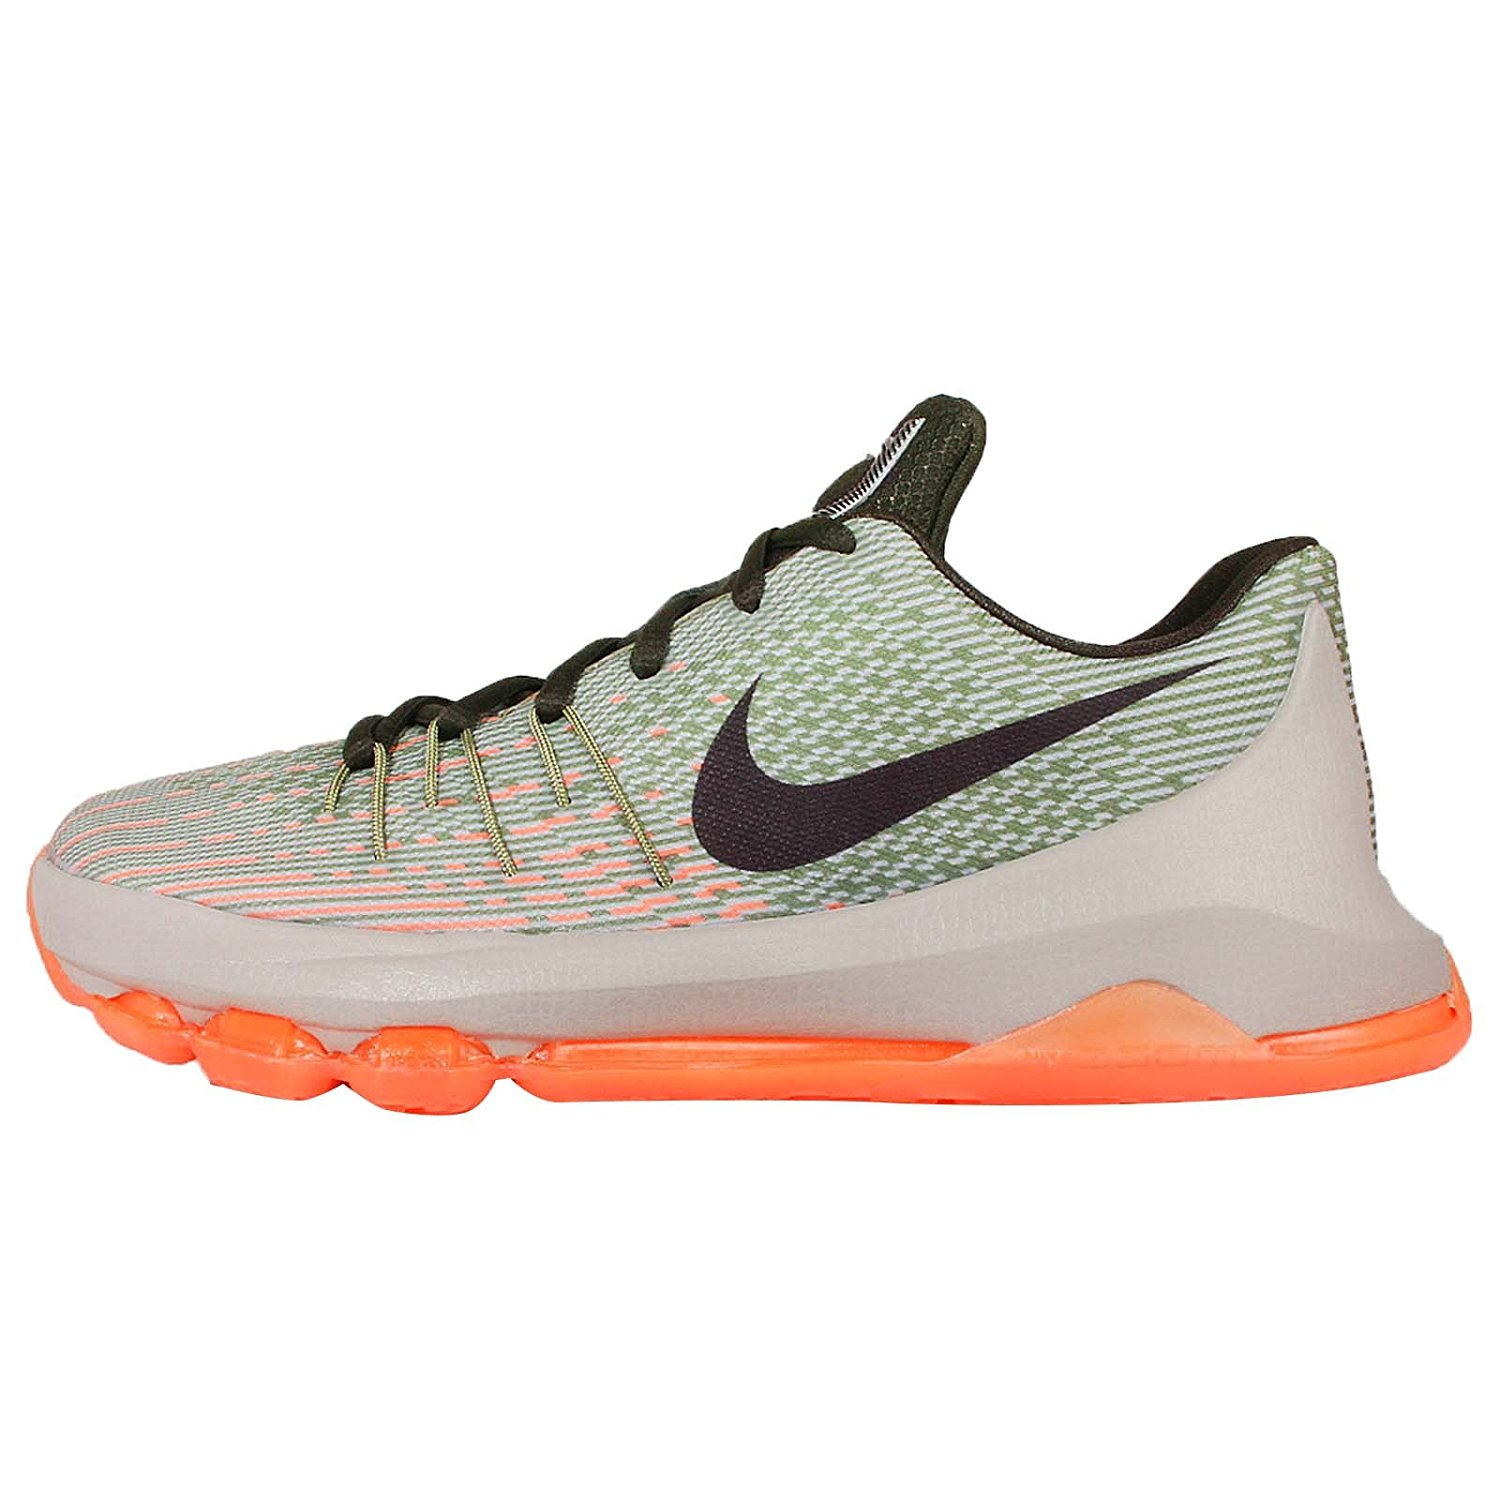 reputable site f9eed 82555 Get Quotations · Nike Kids KD 8 (GS) Basketball Shoe